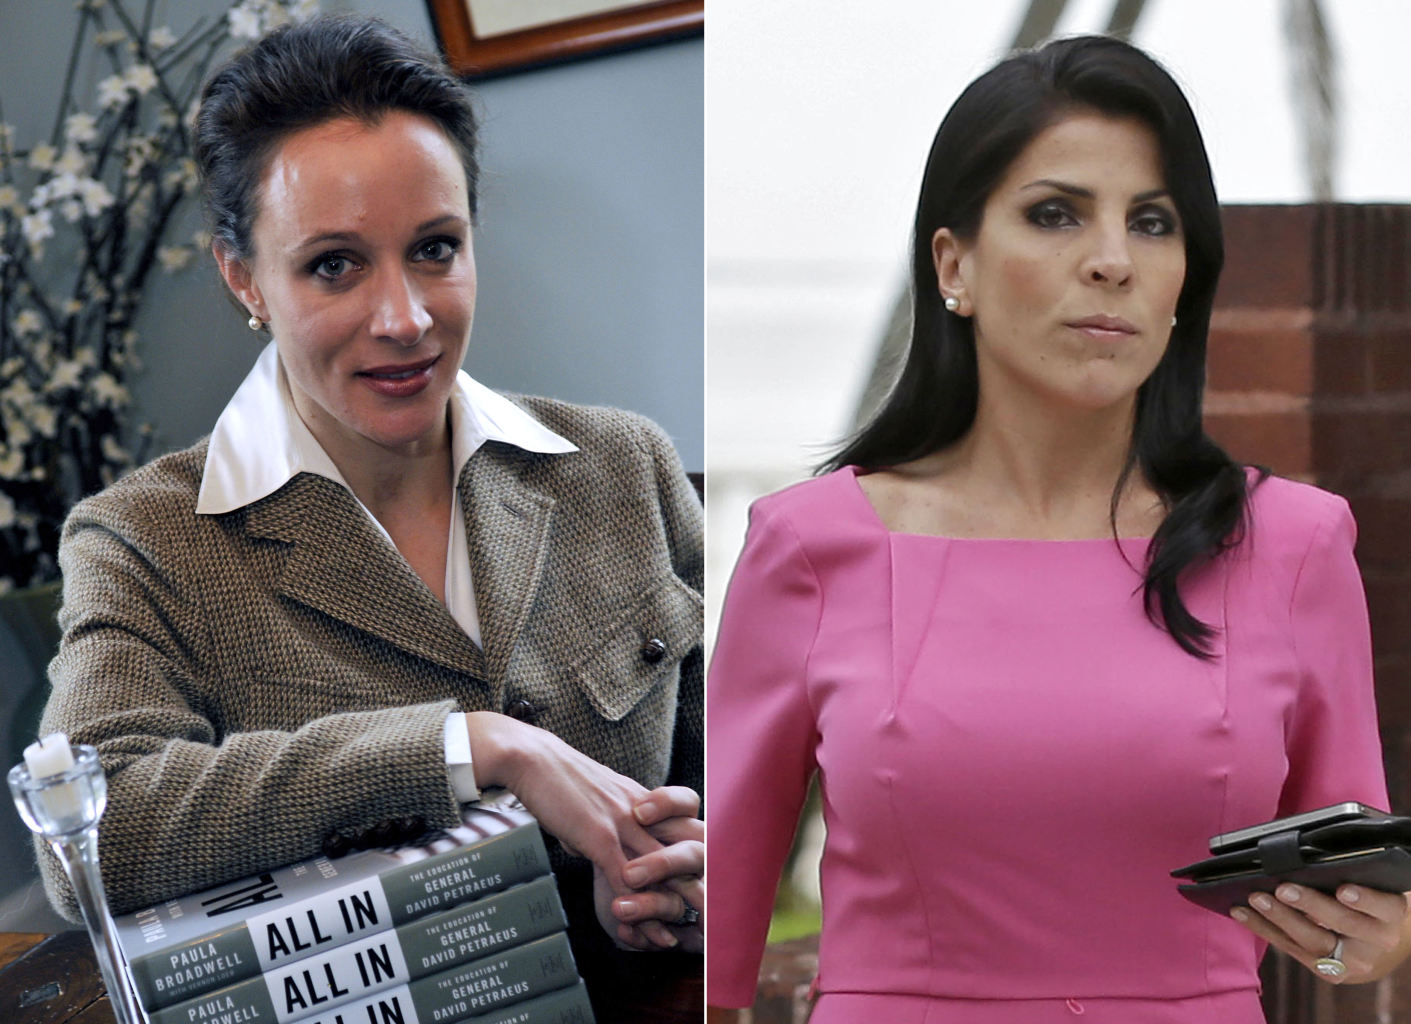 This combo made from file photos shows Gen. David Petraeus' biographer and paramour Paula Broadwell, left, and Florida socialite Jill Kelley. Broadwell and Kelley, the two women at the center of David Petraeus' downfall as CIA director, visited the White House separately on various occasions in what appear to be unrelated calls that did not result in meetings with President Barack Obama.